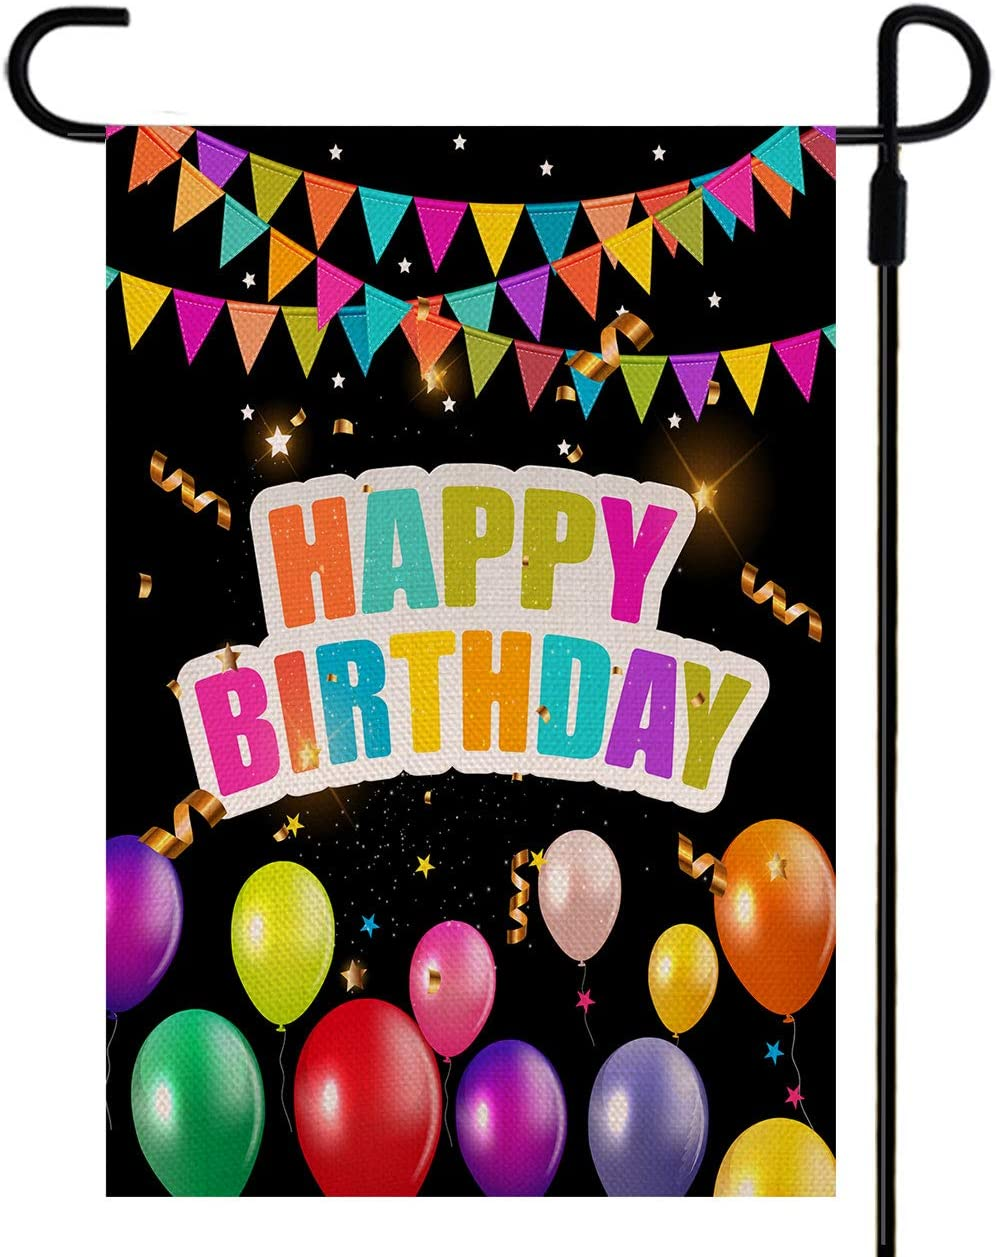 Yileqi Happy Birthday Garden Flag Yard Signs, Burlap Double Sided Readable Lawn Signs for Outdoor Decorations, Yard Flag 12.5 x 18 inch Birthday Banner for Party Celebration (Birthday)